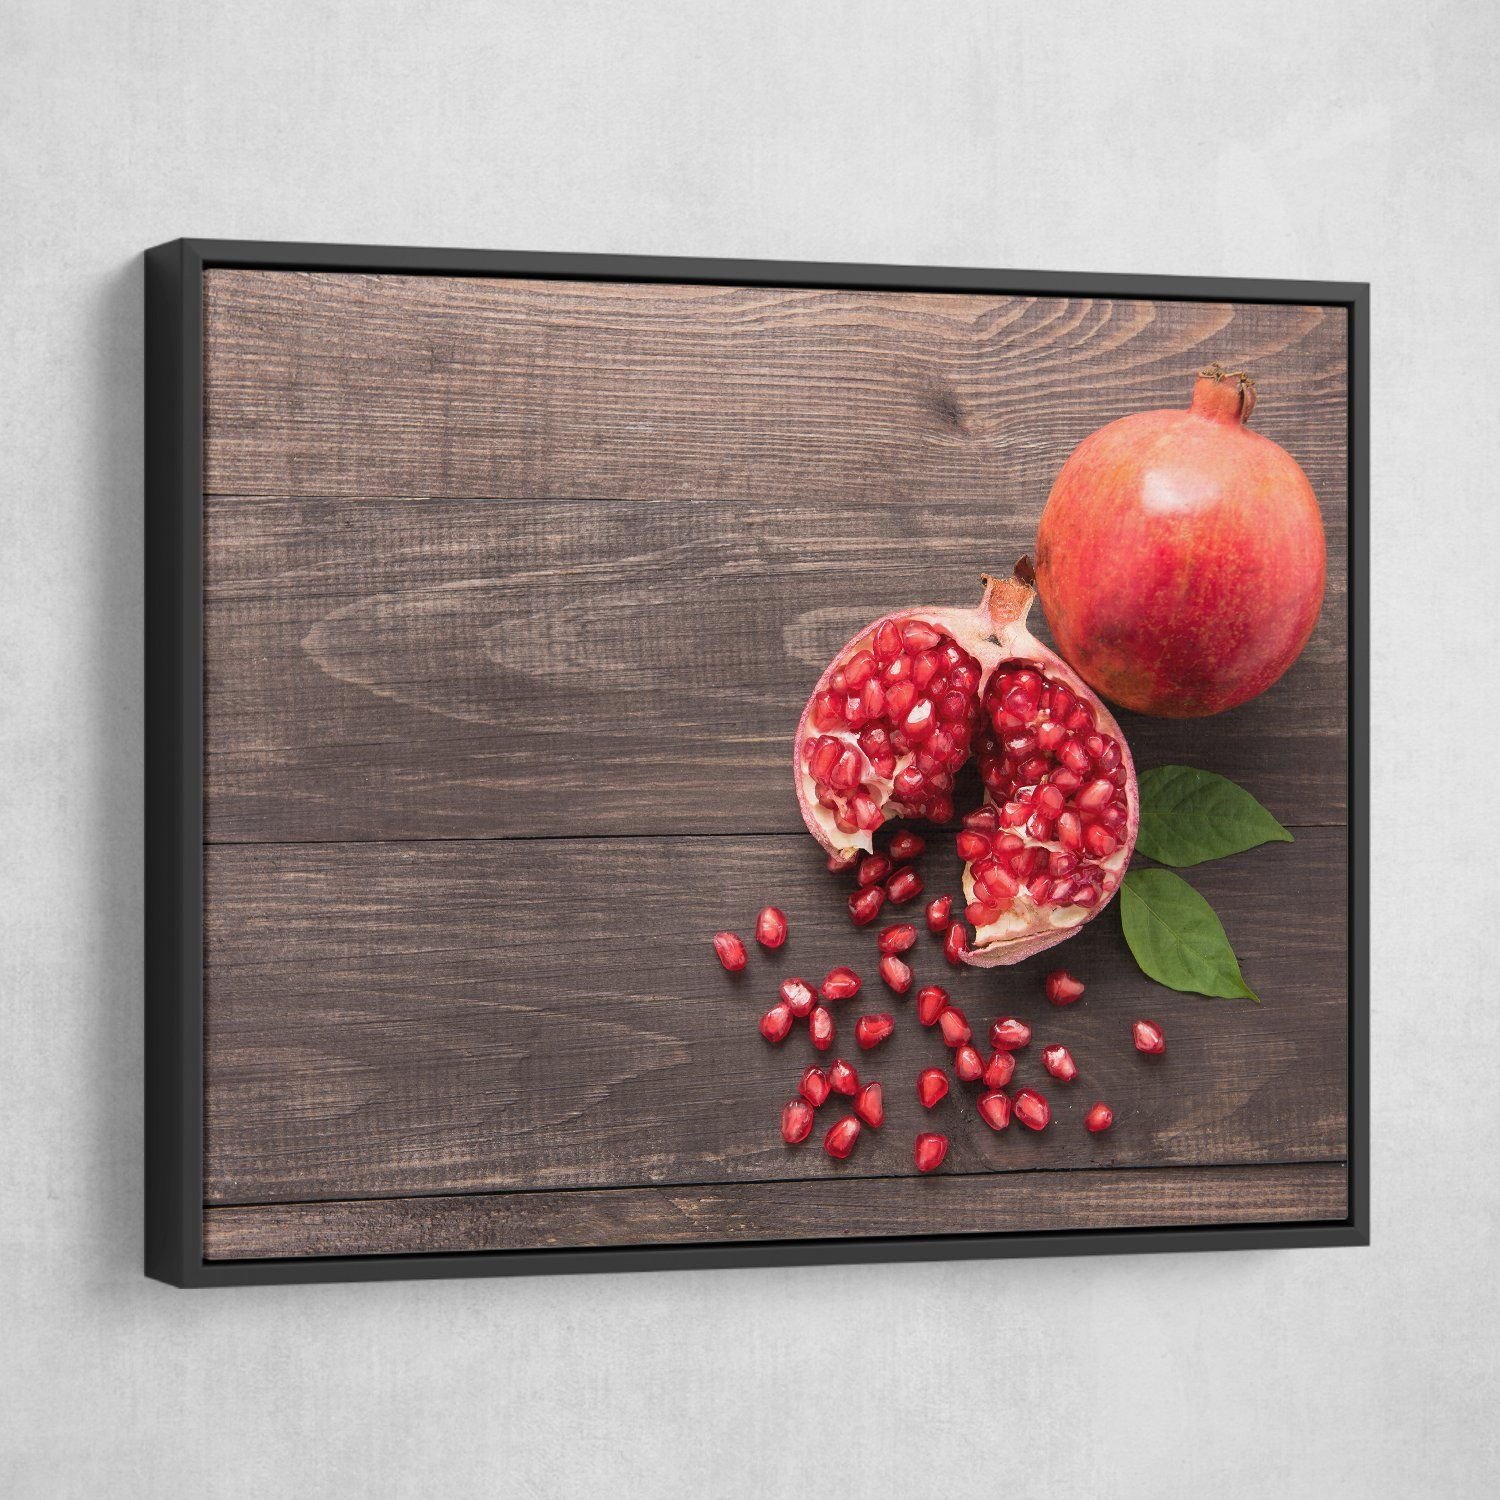 Pomegranate wall art black frame